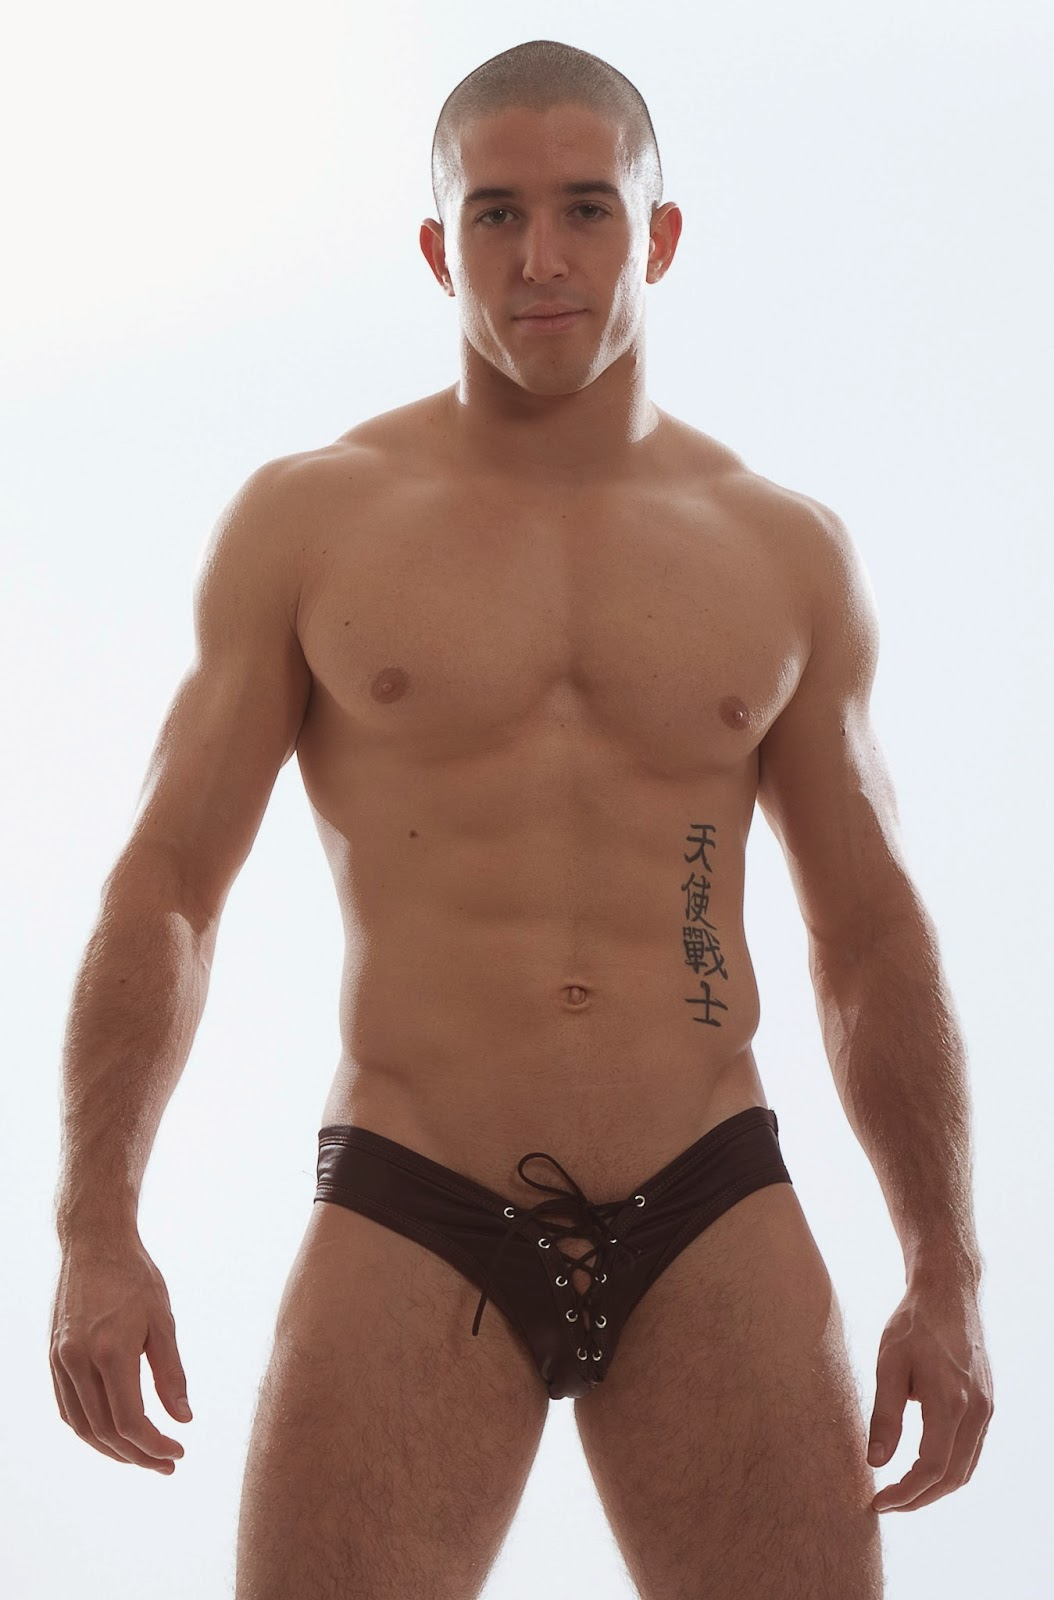 GBGB Wear Josh Bikini Mens Underwear Model